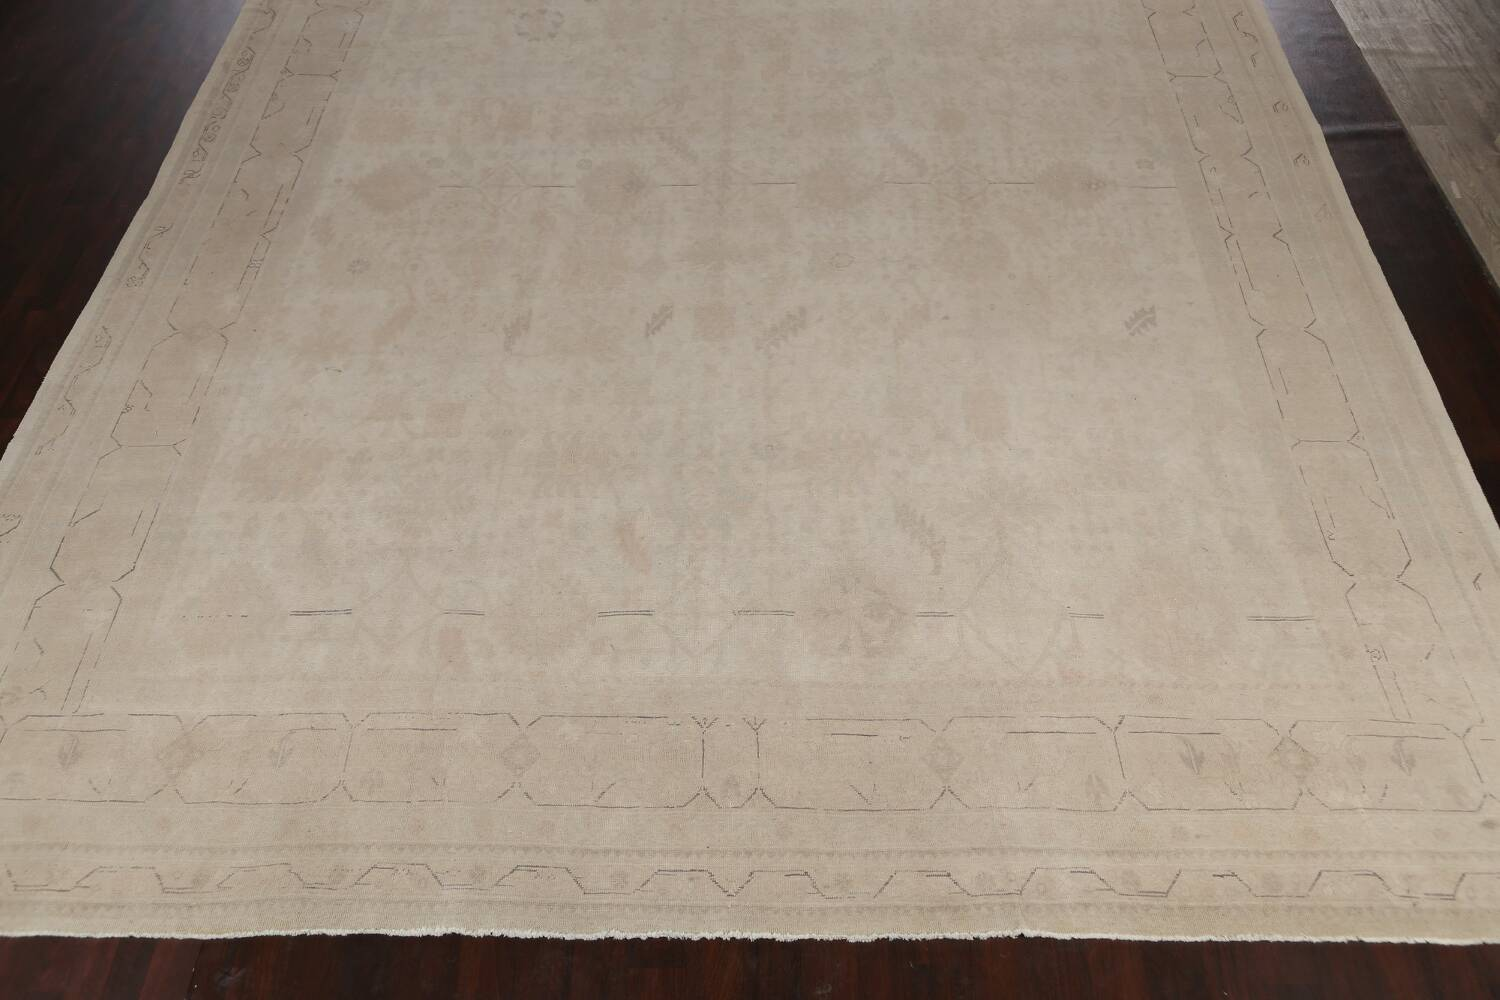 Antique Sultanabad Vegetable Dye Persian Area Rug 14x23 image 8